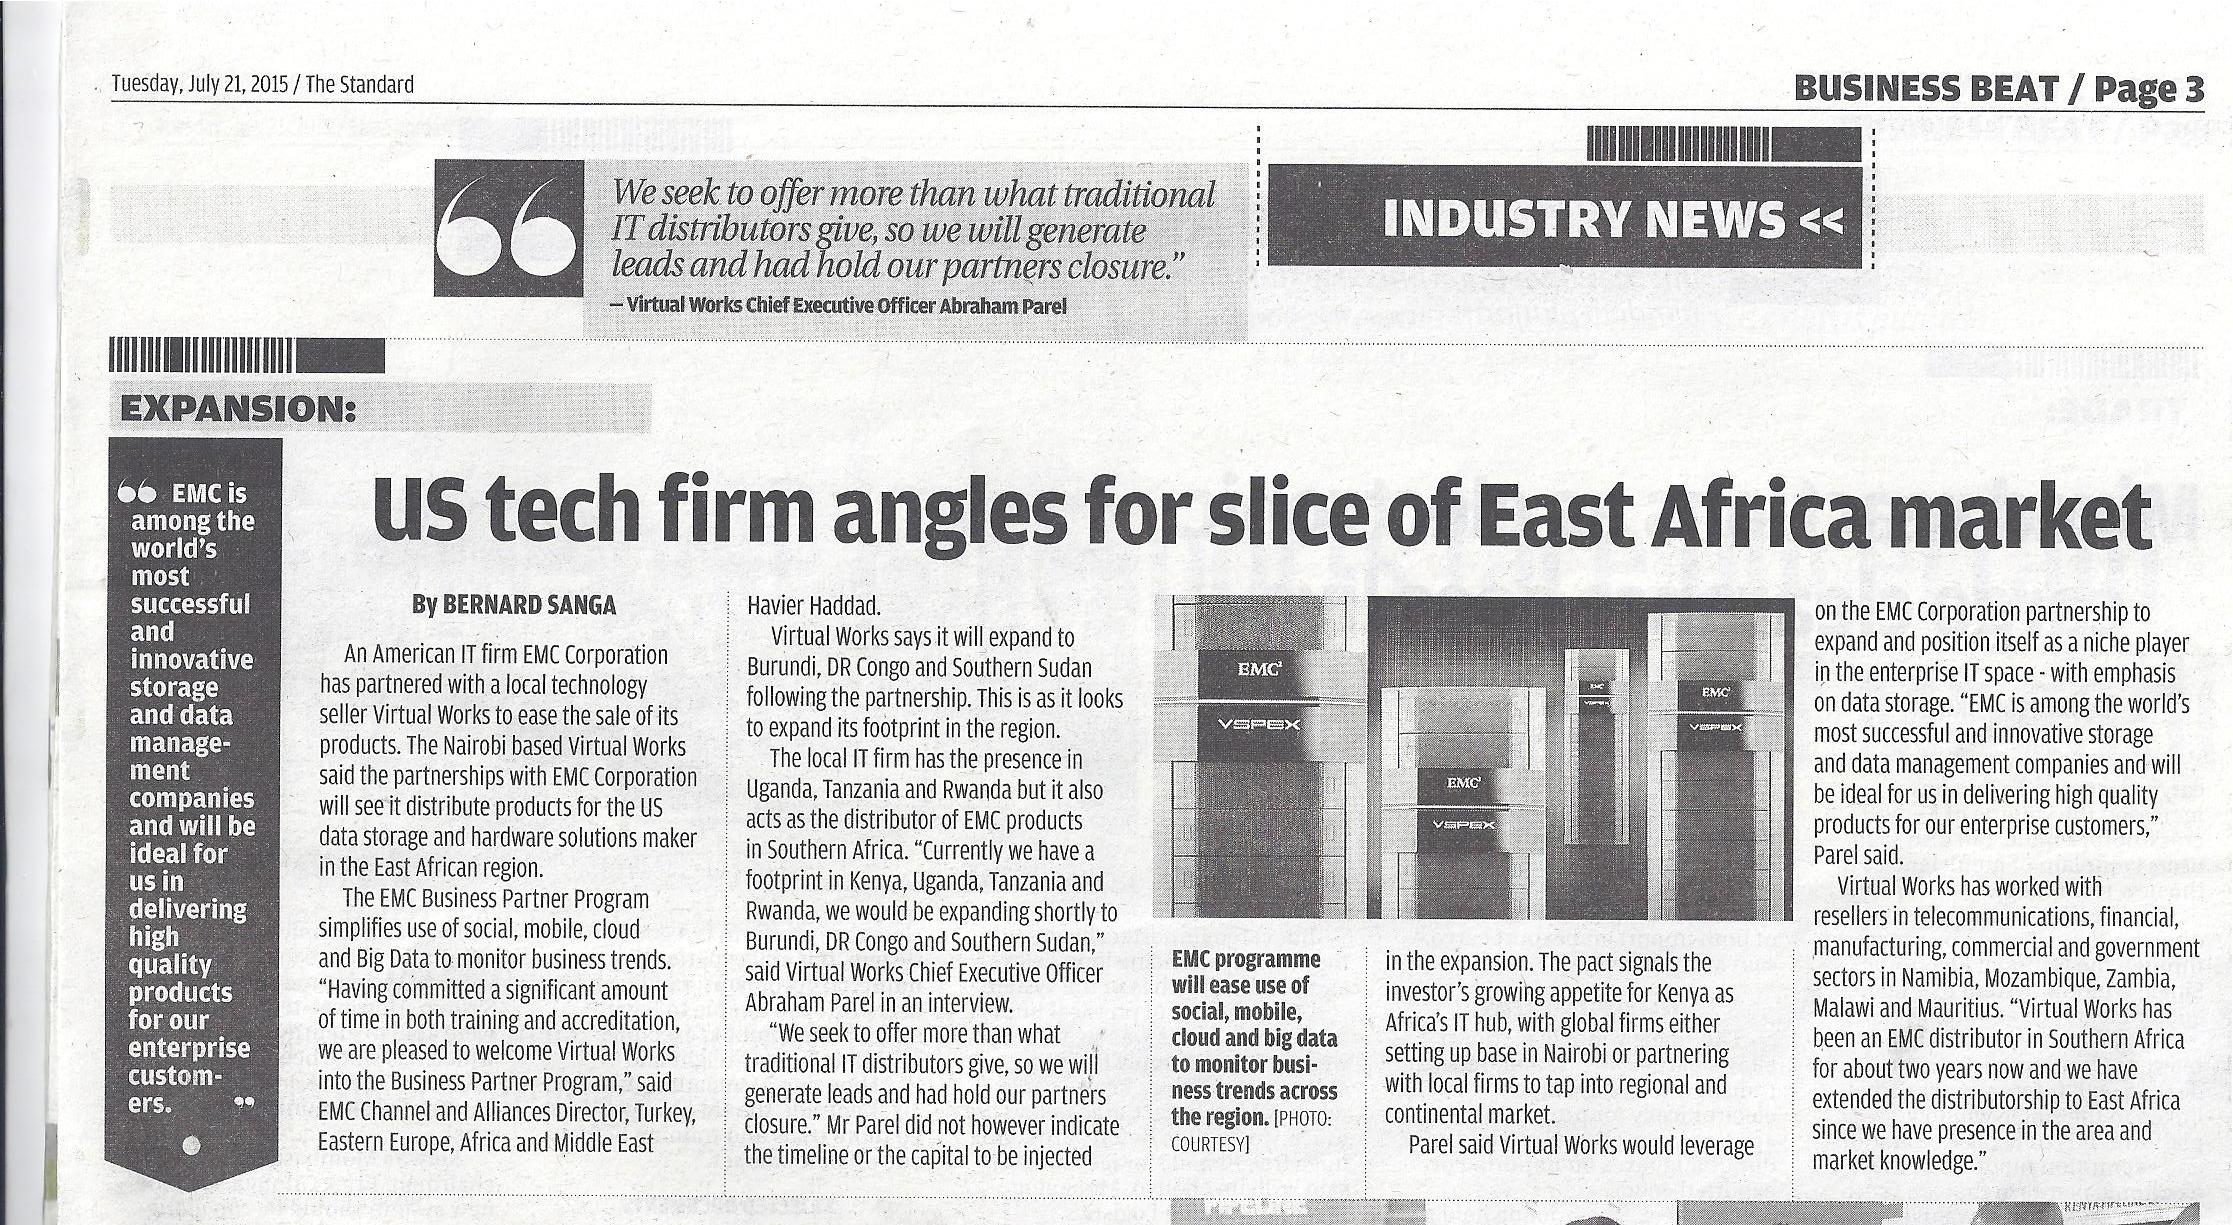 Virtual Works launches EMC into East Africa